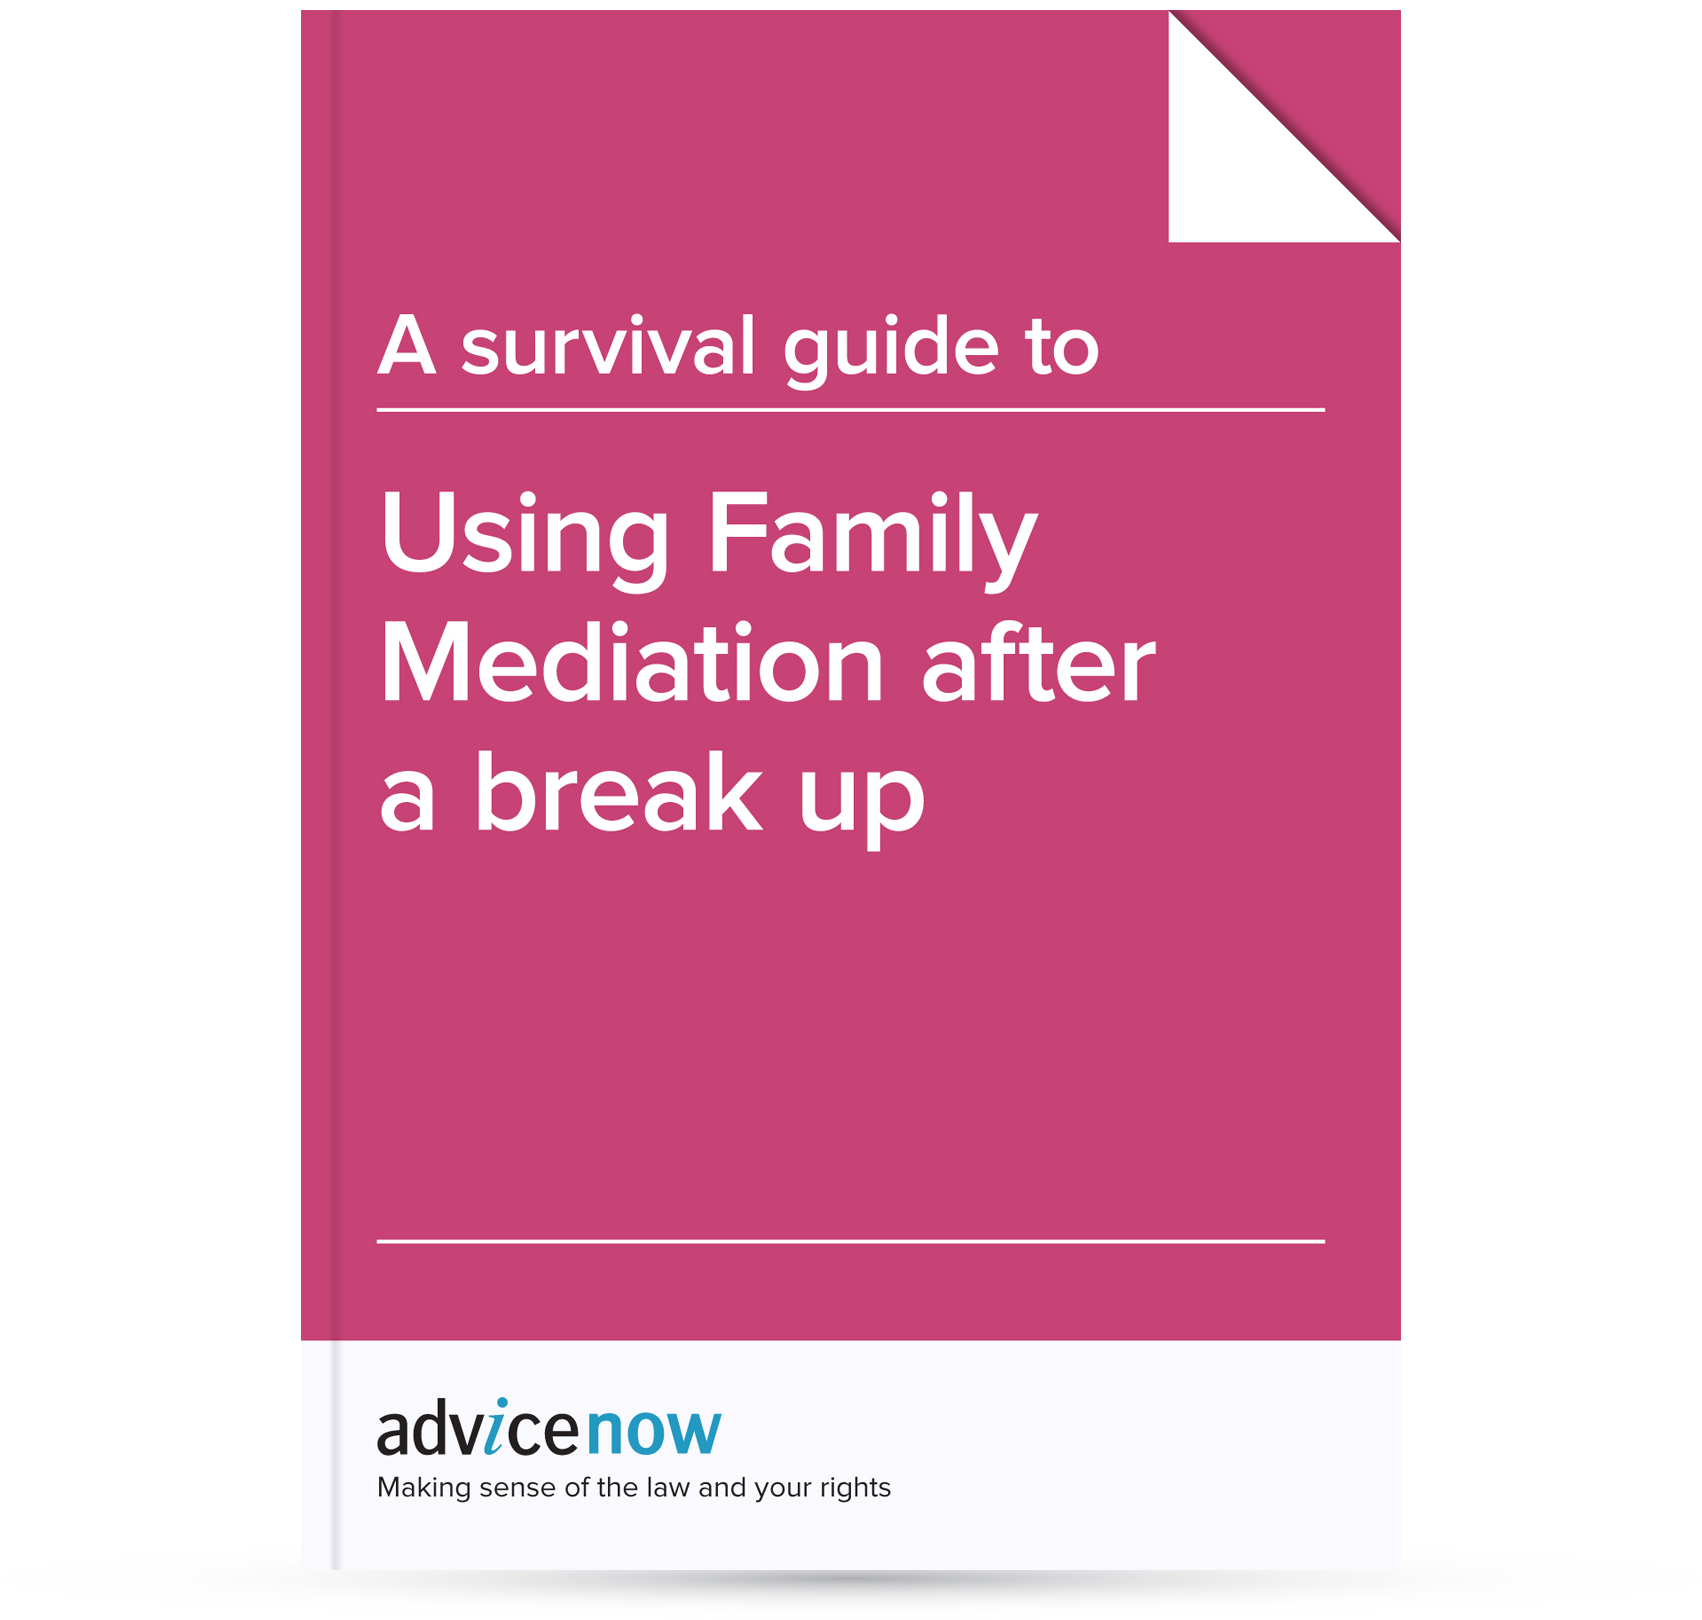 A Survival Guide To Using Family Mediation After A Break Up Advicenow